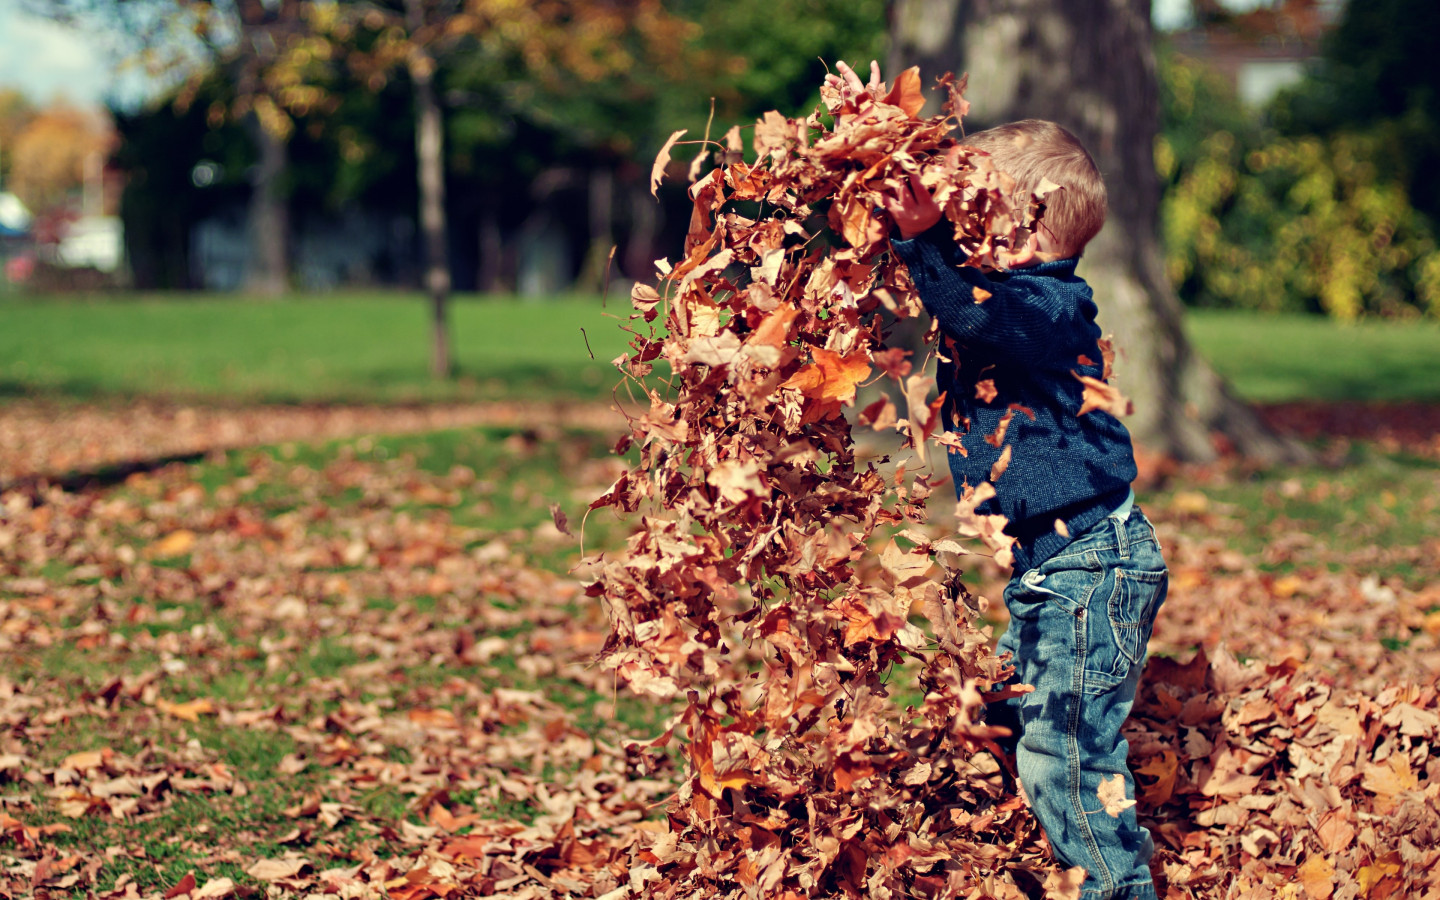 The child is playing with leaves wallpaper 1440x900